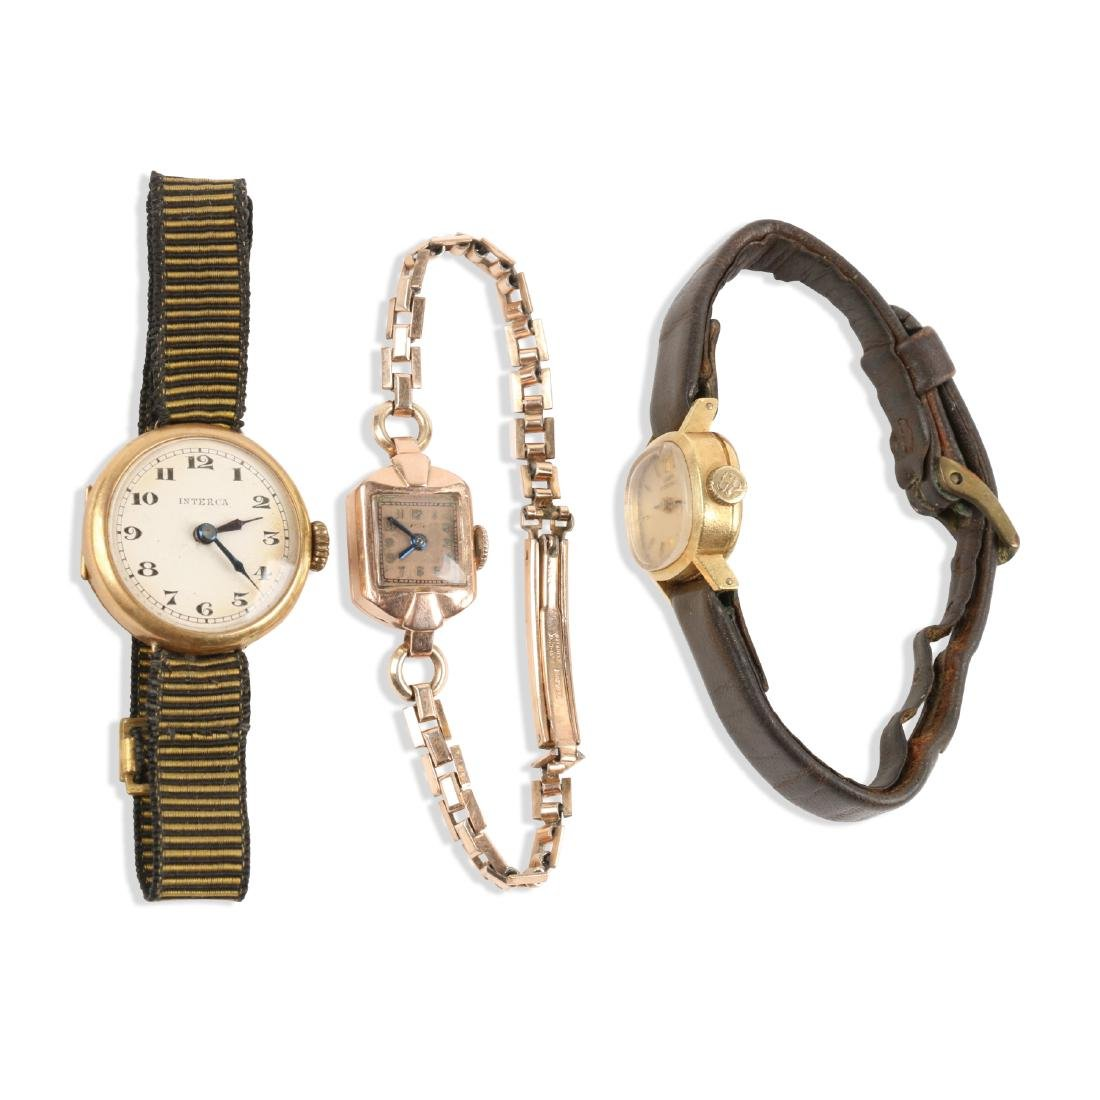 Swiss, Lady's Gold Cocktail Watches